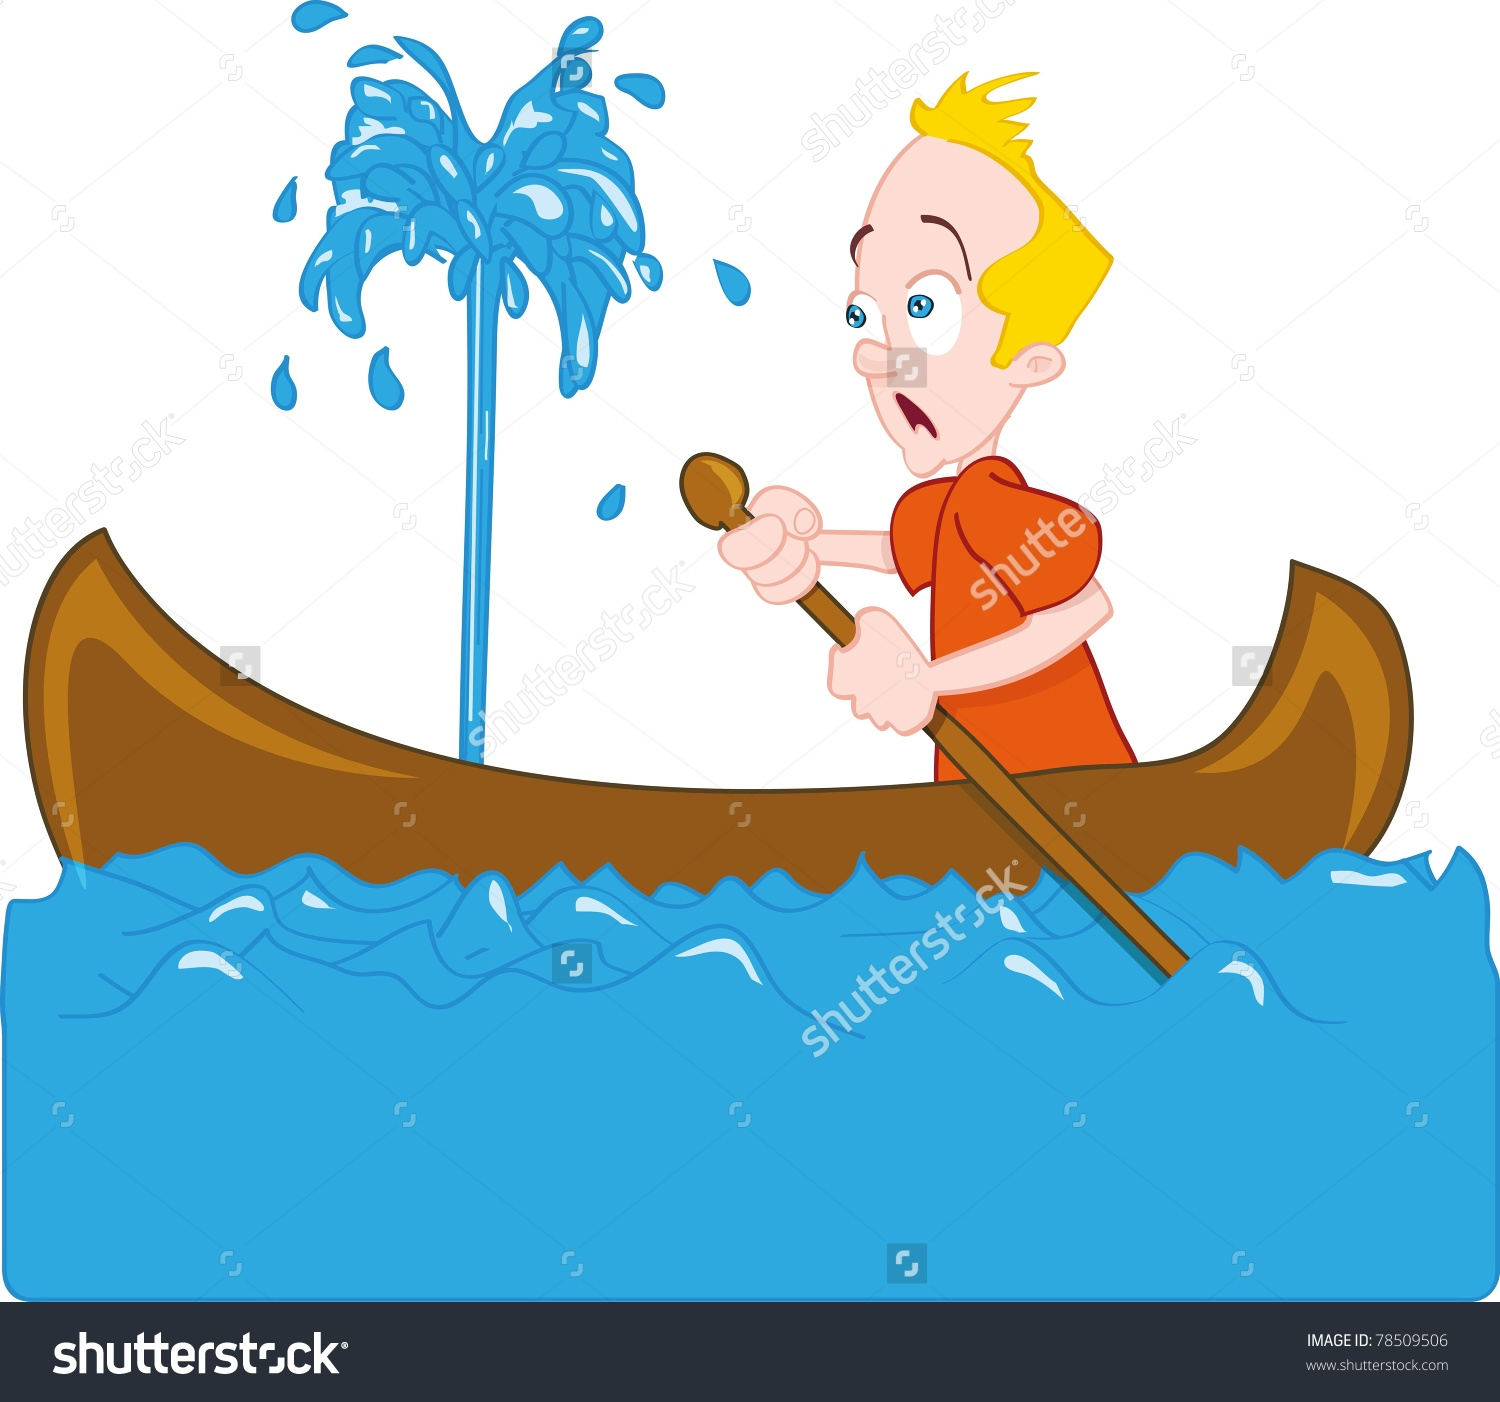 Boat sink clipart.